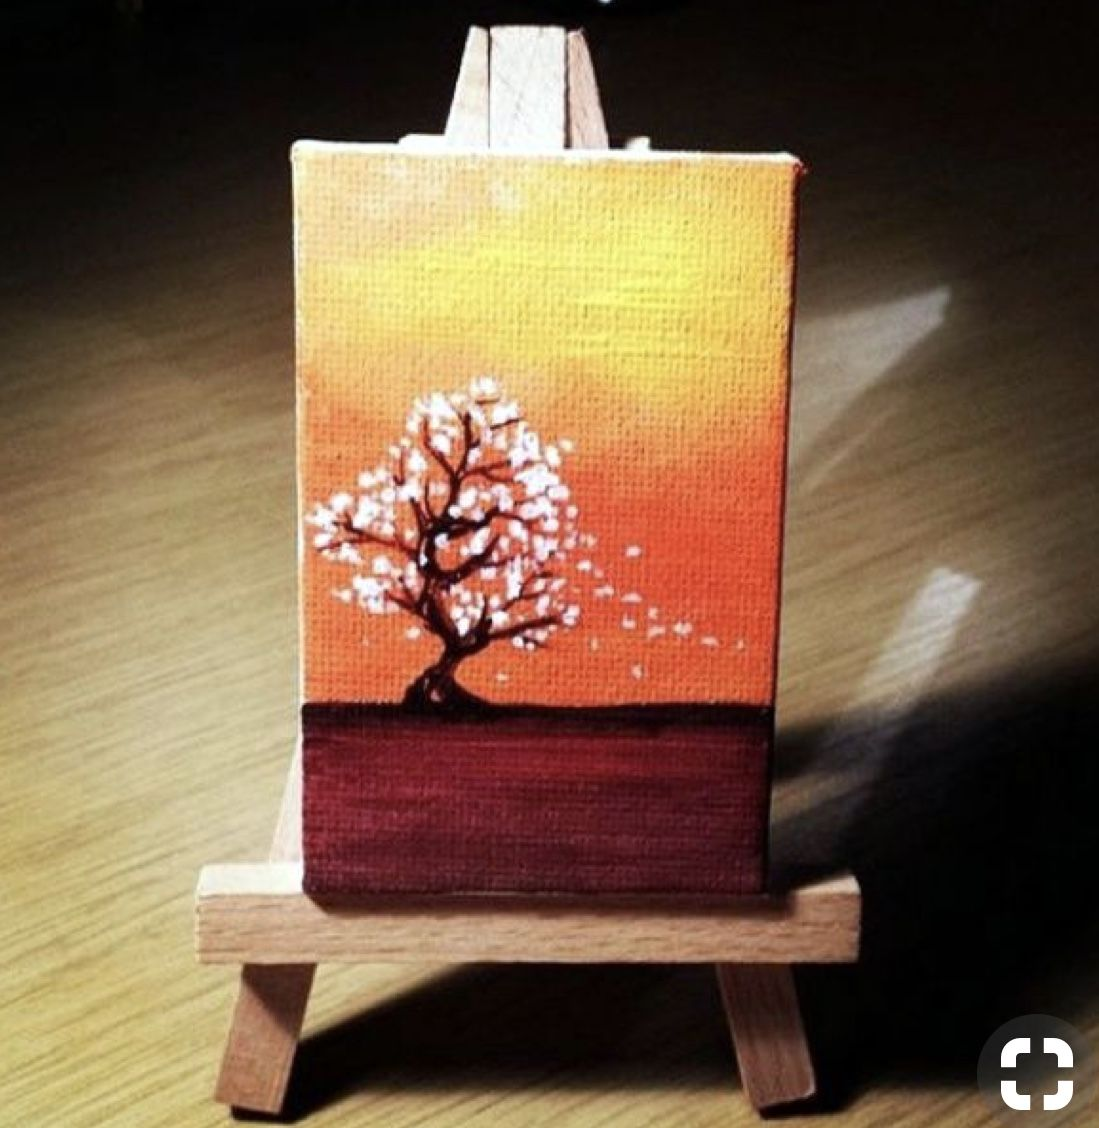 Pin by kaleigh on artsy pinterest artsy sketches and drawings